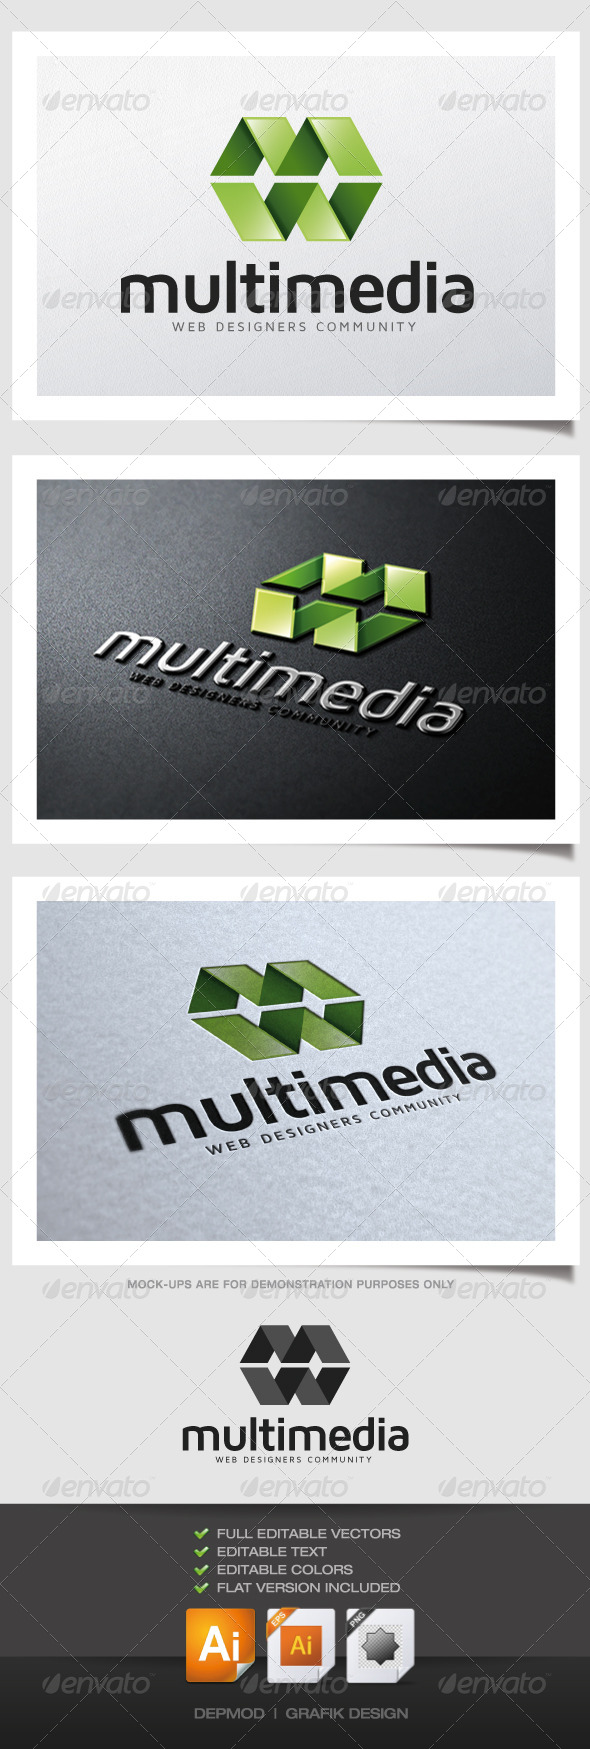 Multimedia Logo - Abstract Logo Templates